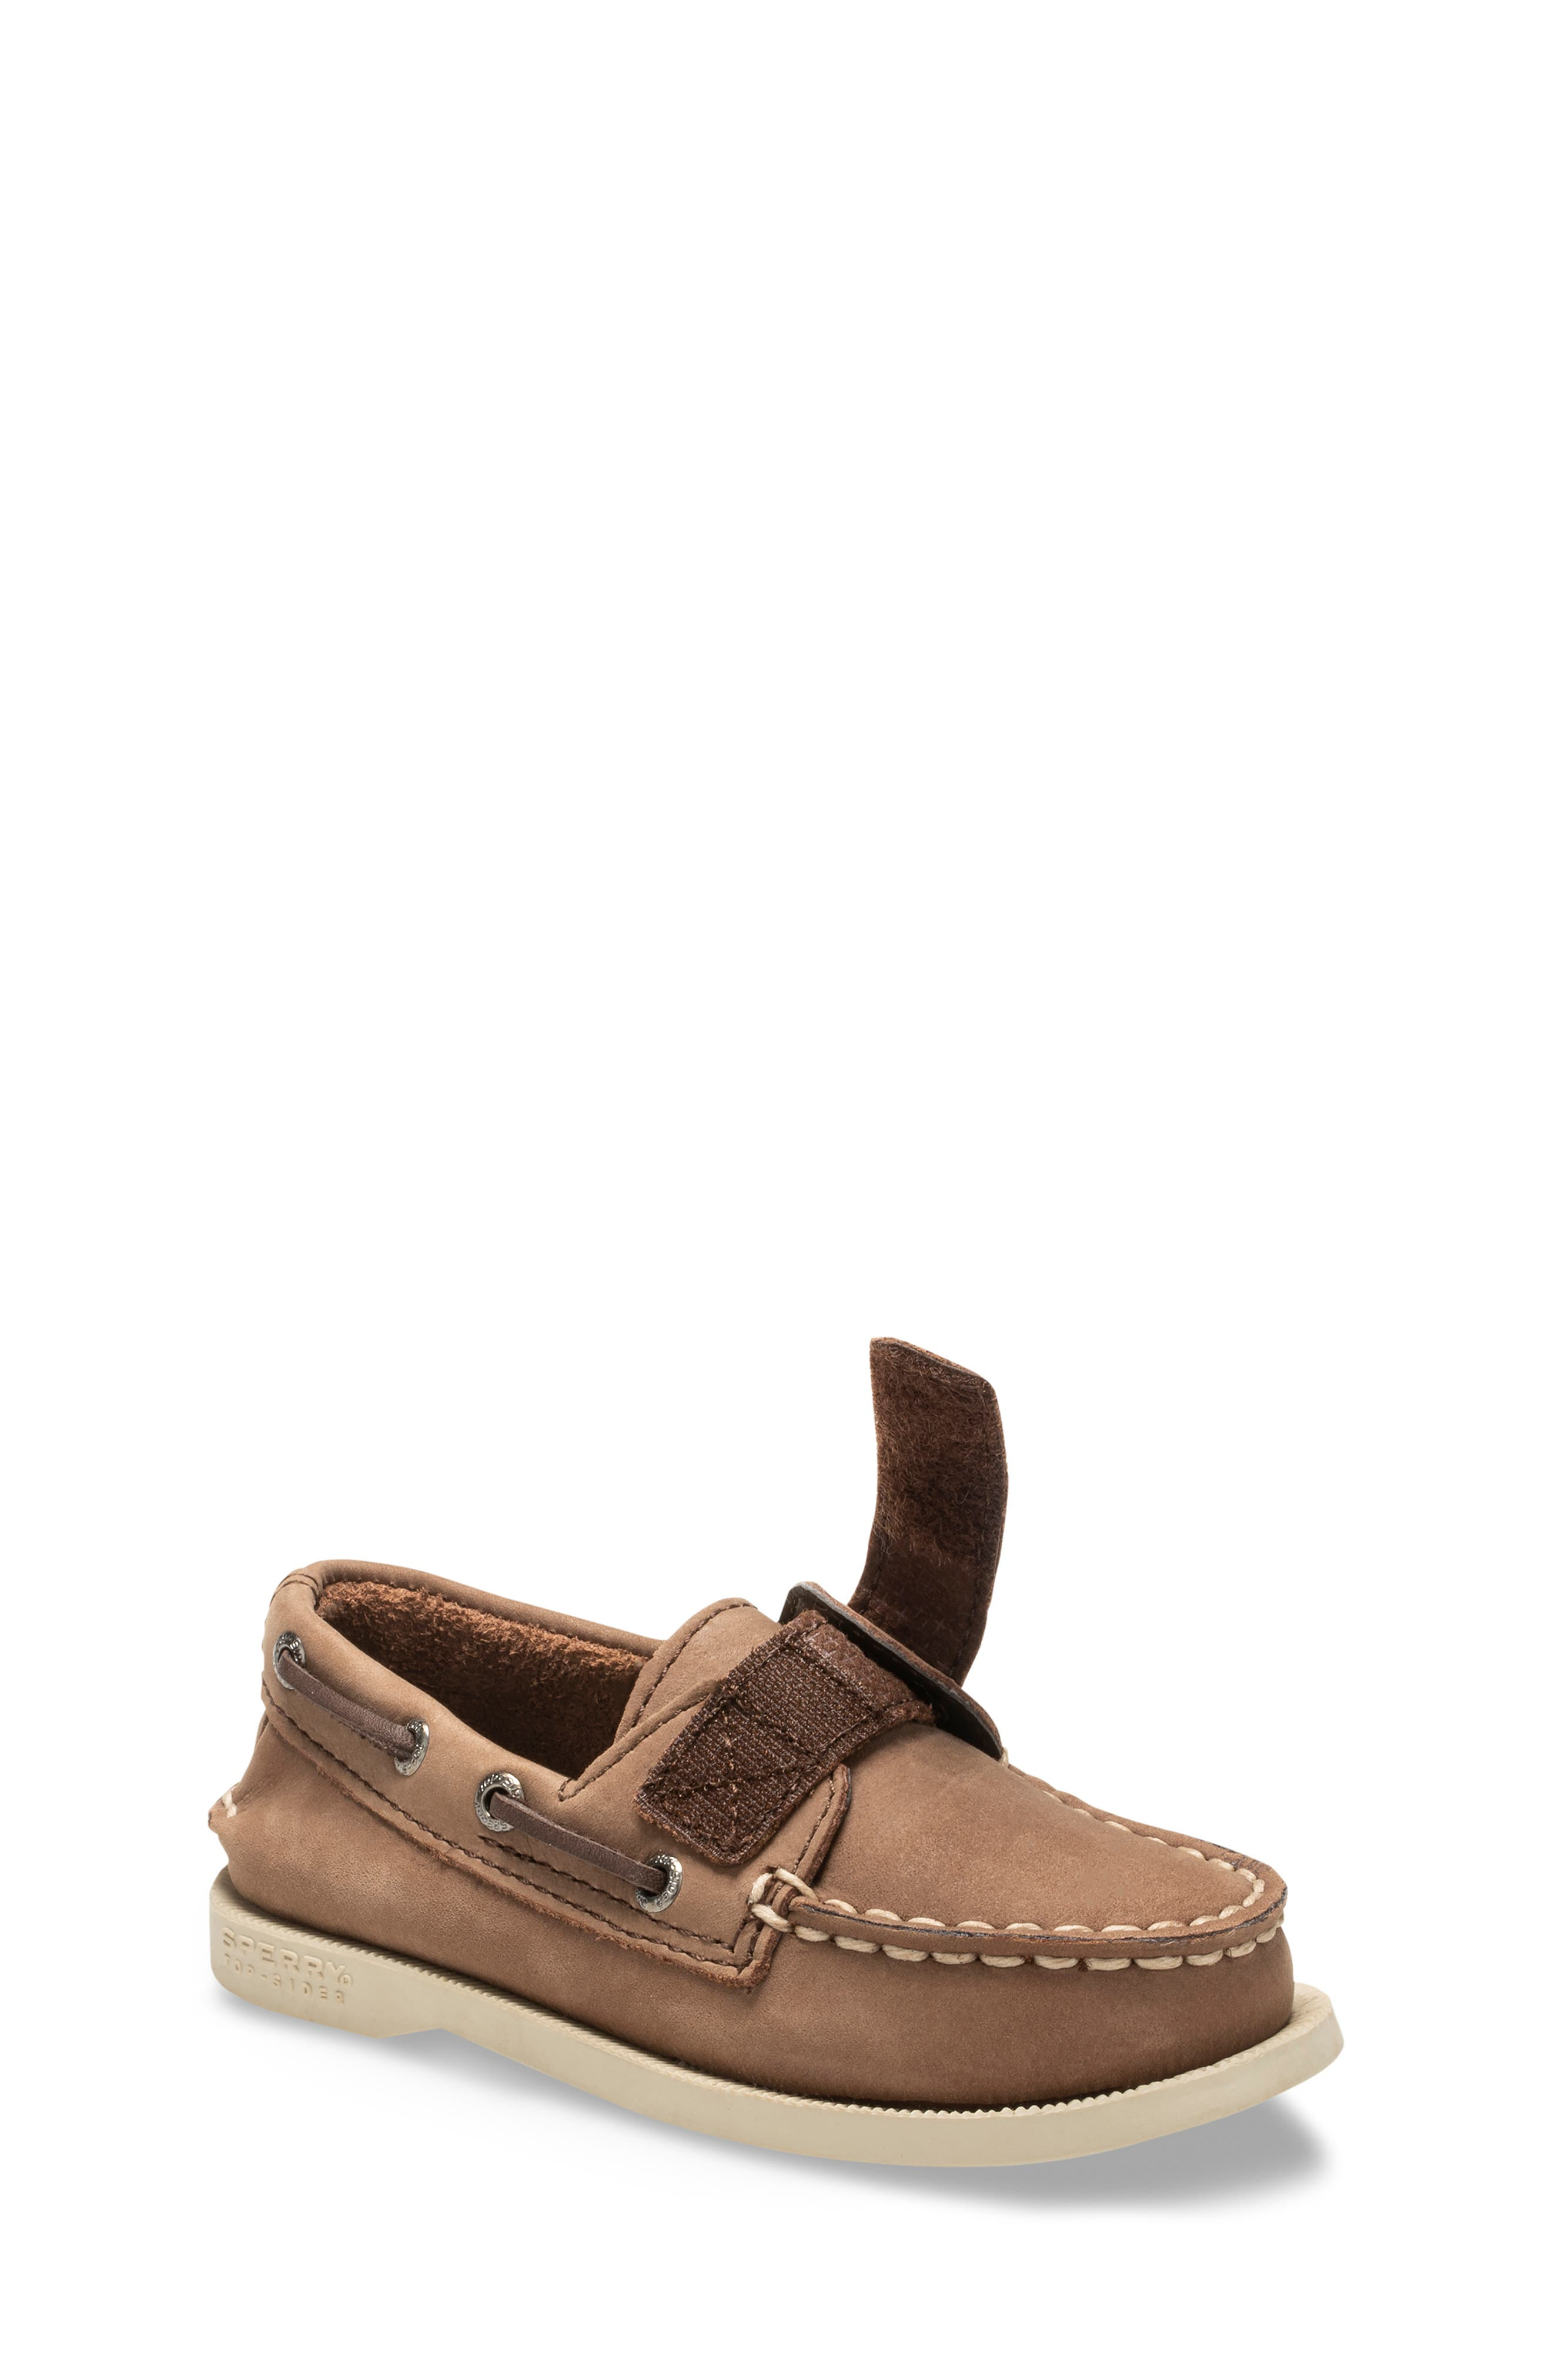 SPERRY KIDS, Sperry Top-Sider<sup>®</sup> Kids 'Authentic Original' Boat Shoe, Alternate thumbnail 2, color, BROWN